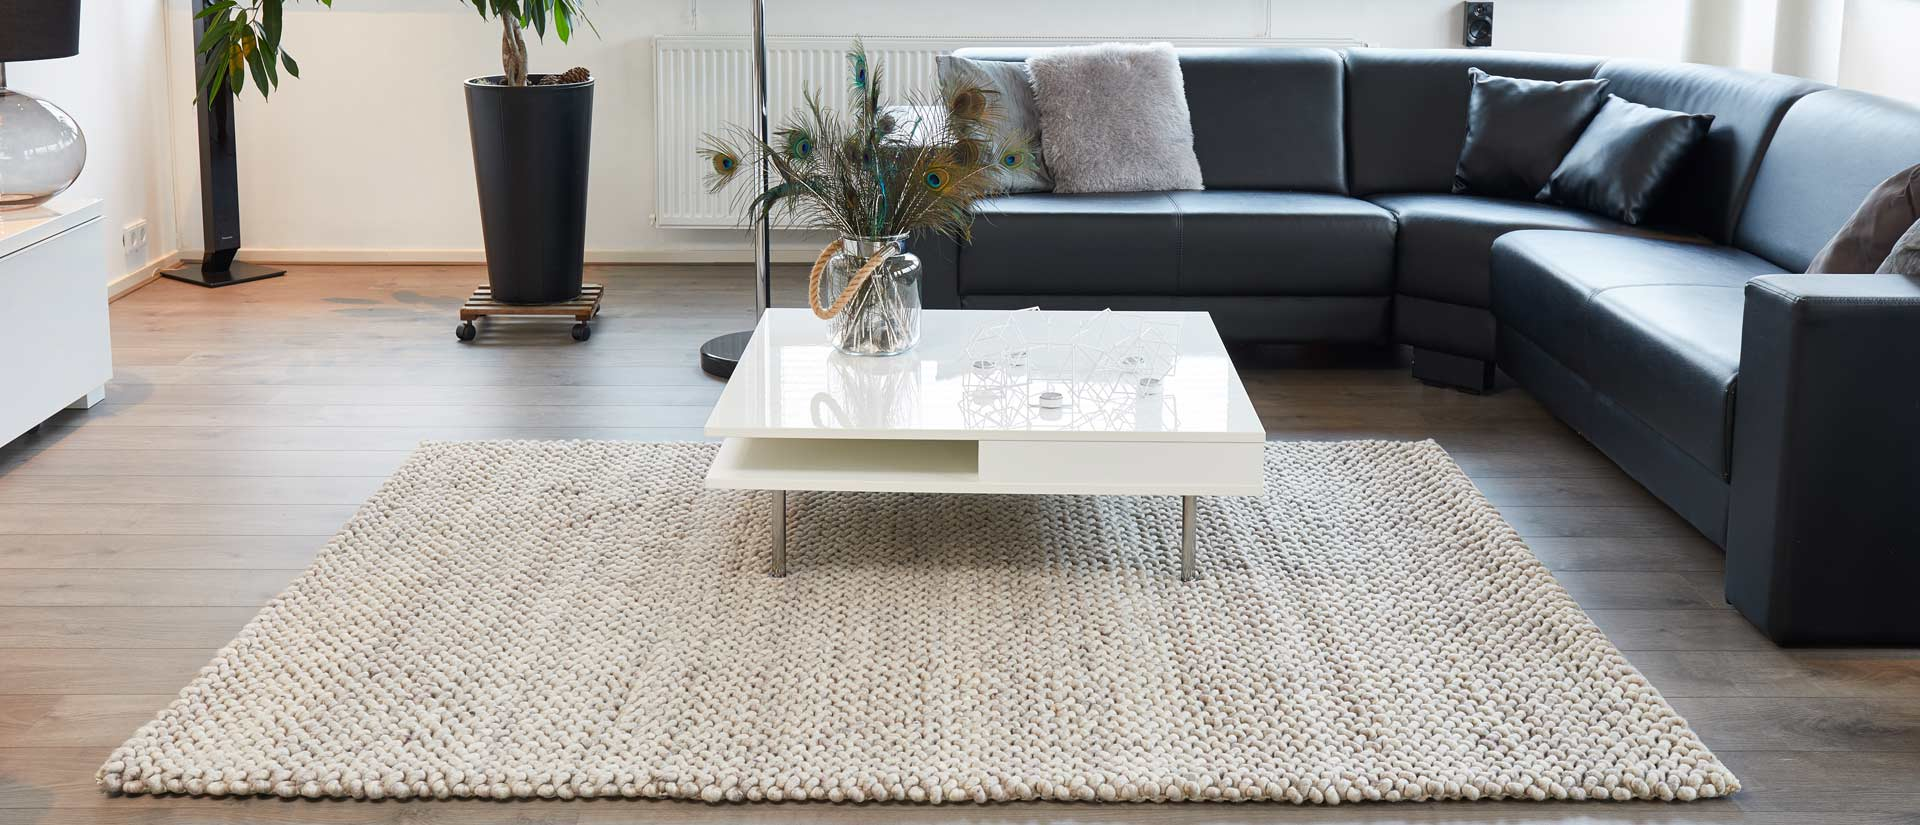 luxury area rug lisboa